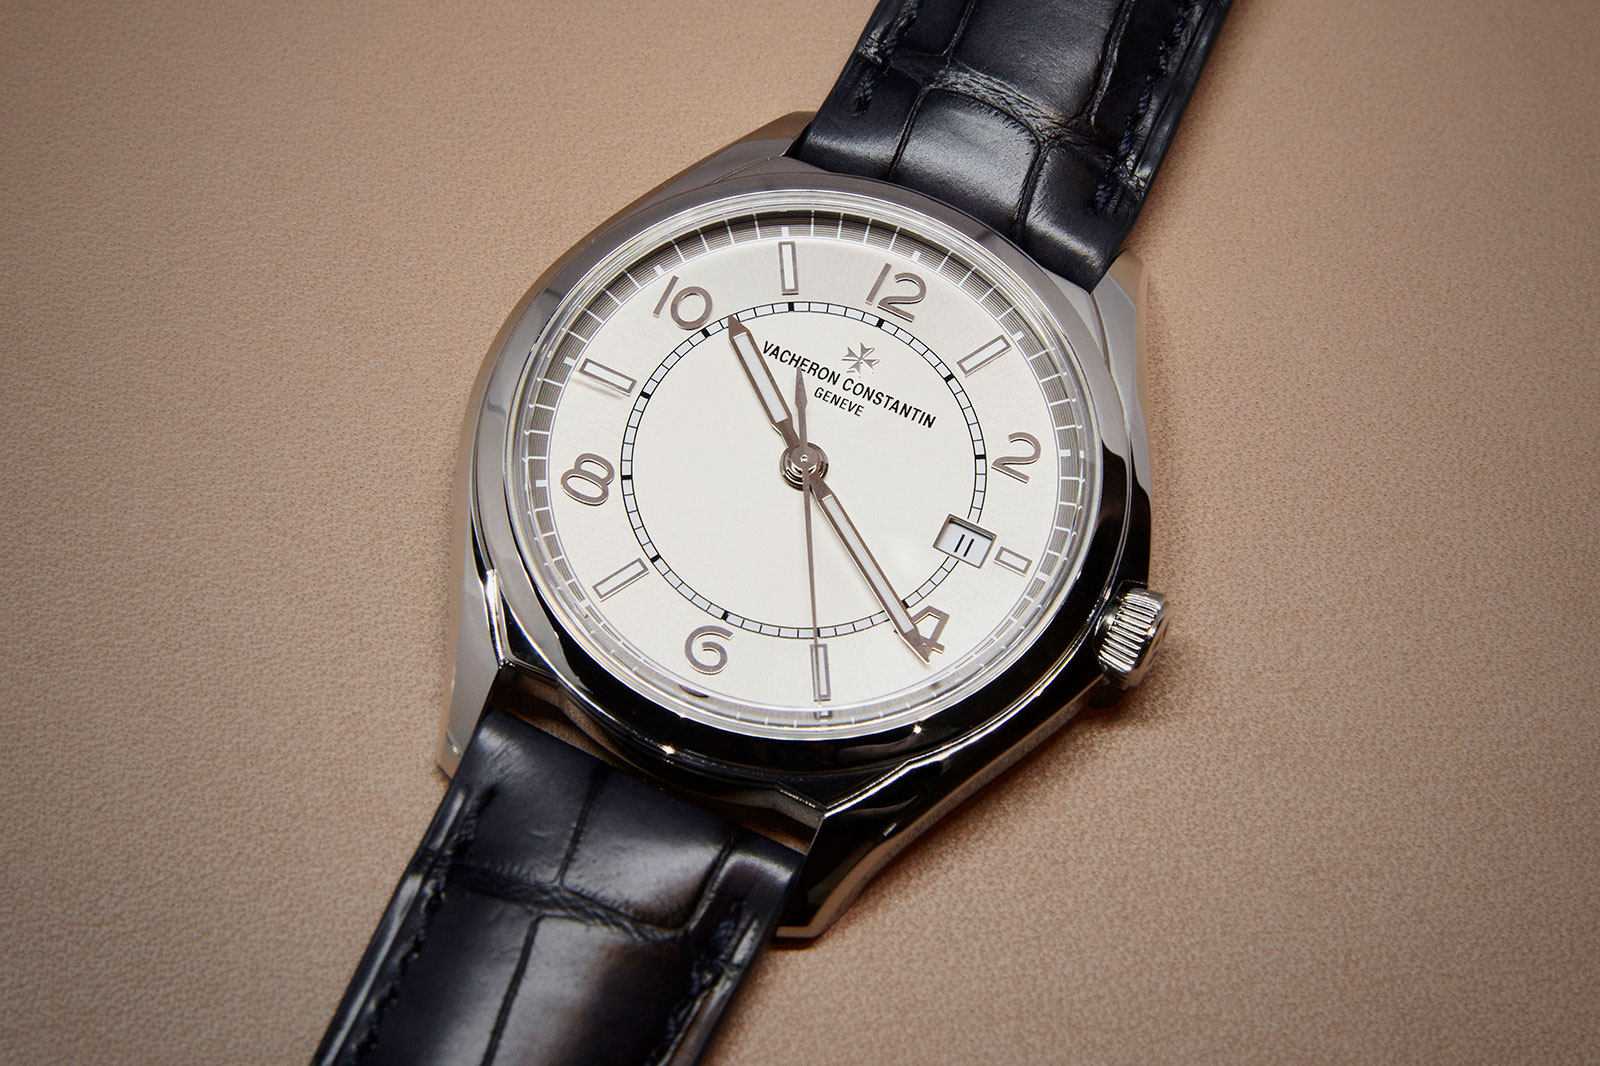 Vacheron Constantin Fiftysix Self-Winding steel